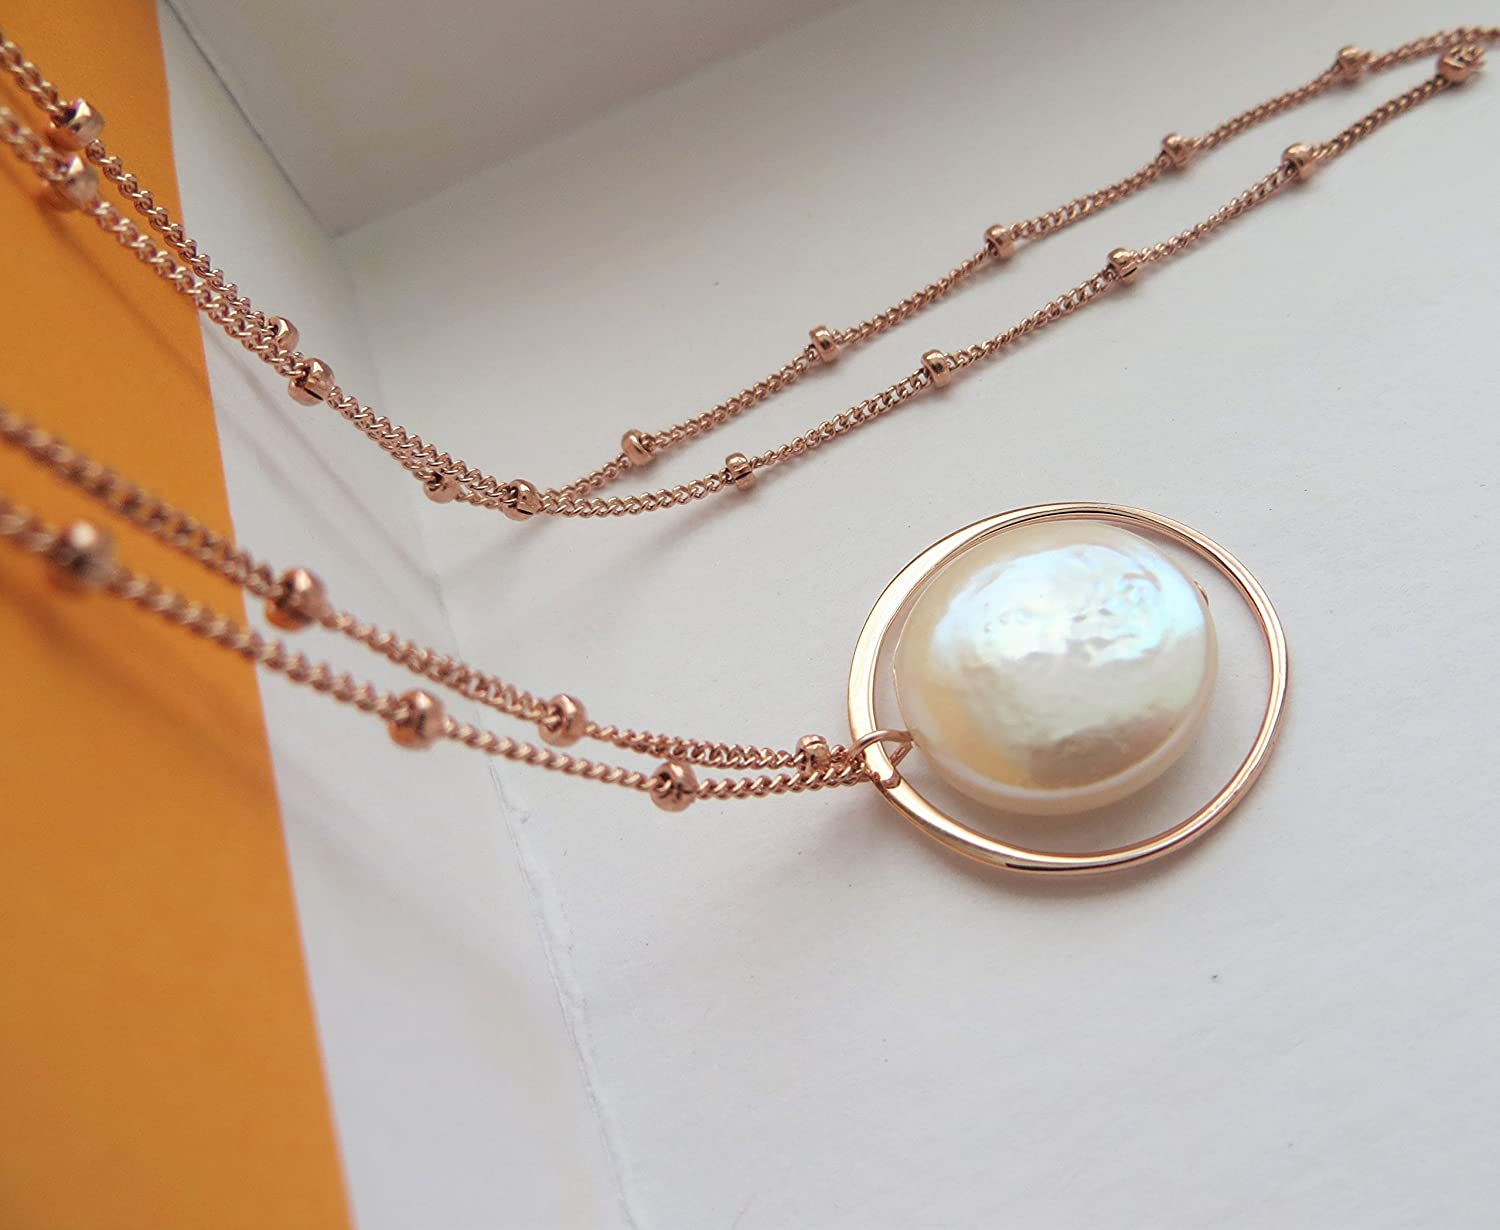 fd886c6e8b Amazon.com: Mother of the bride gift, Eternity pearl necklace, wedding day  jewelry, love mom: Handmade